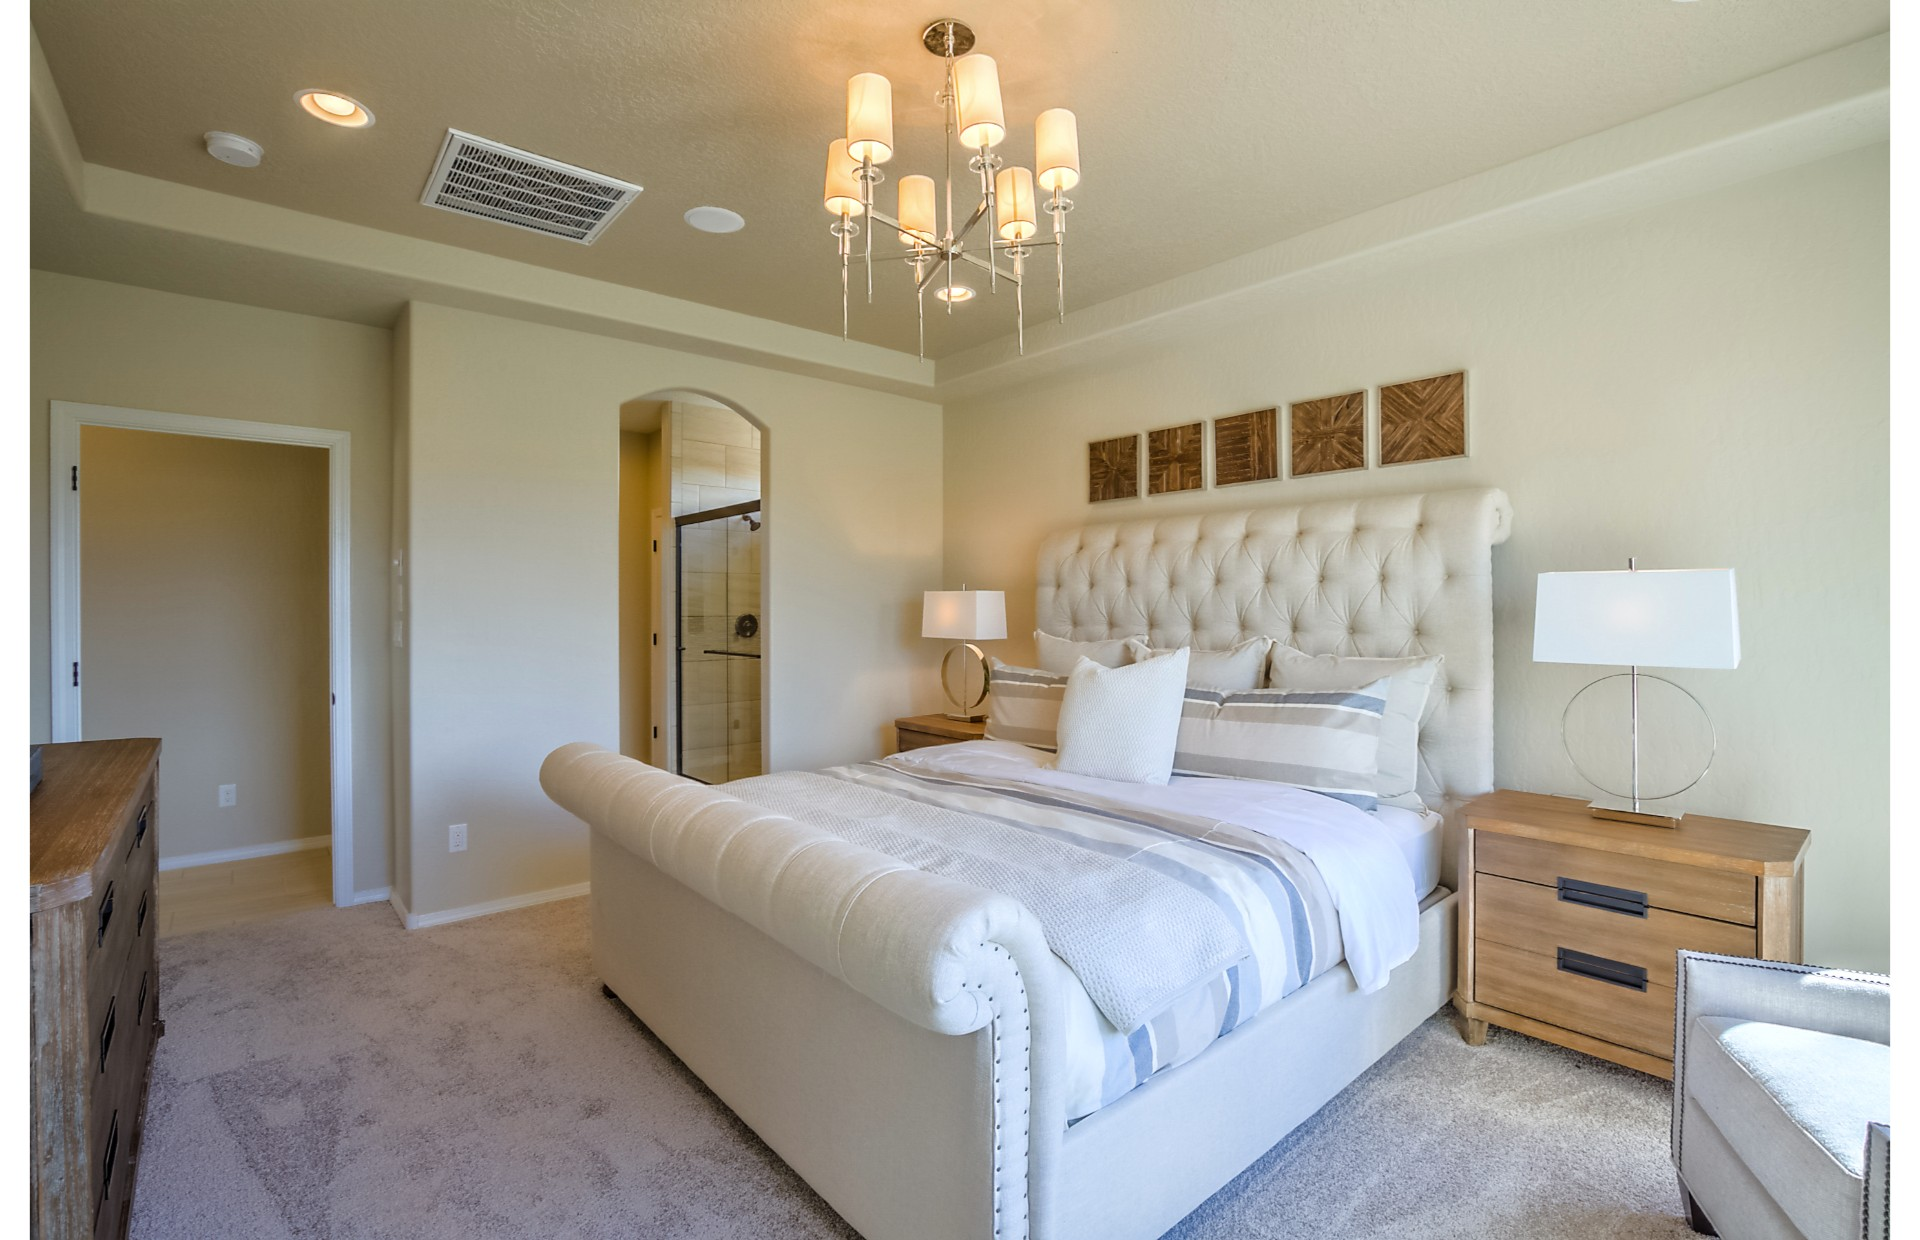 The Ridge at Stormcloud by Pulte Homes image 1